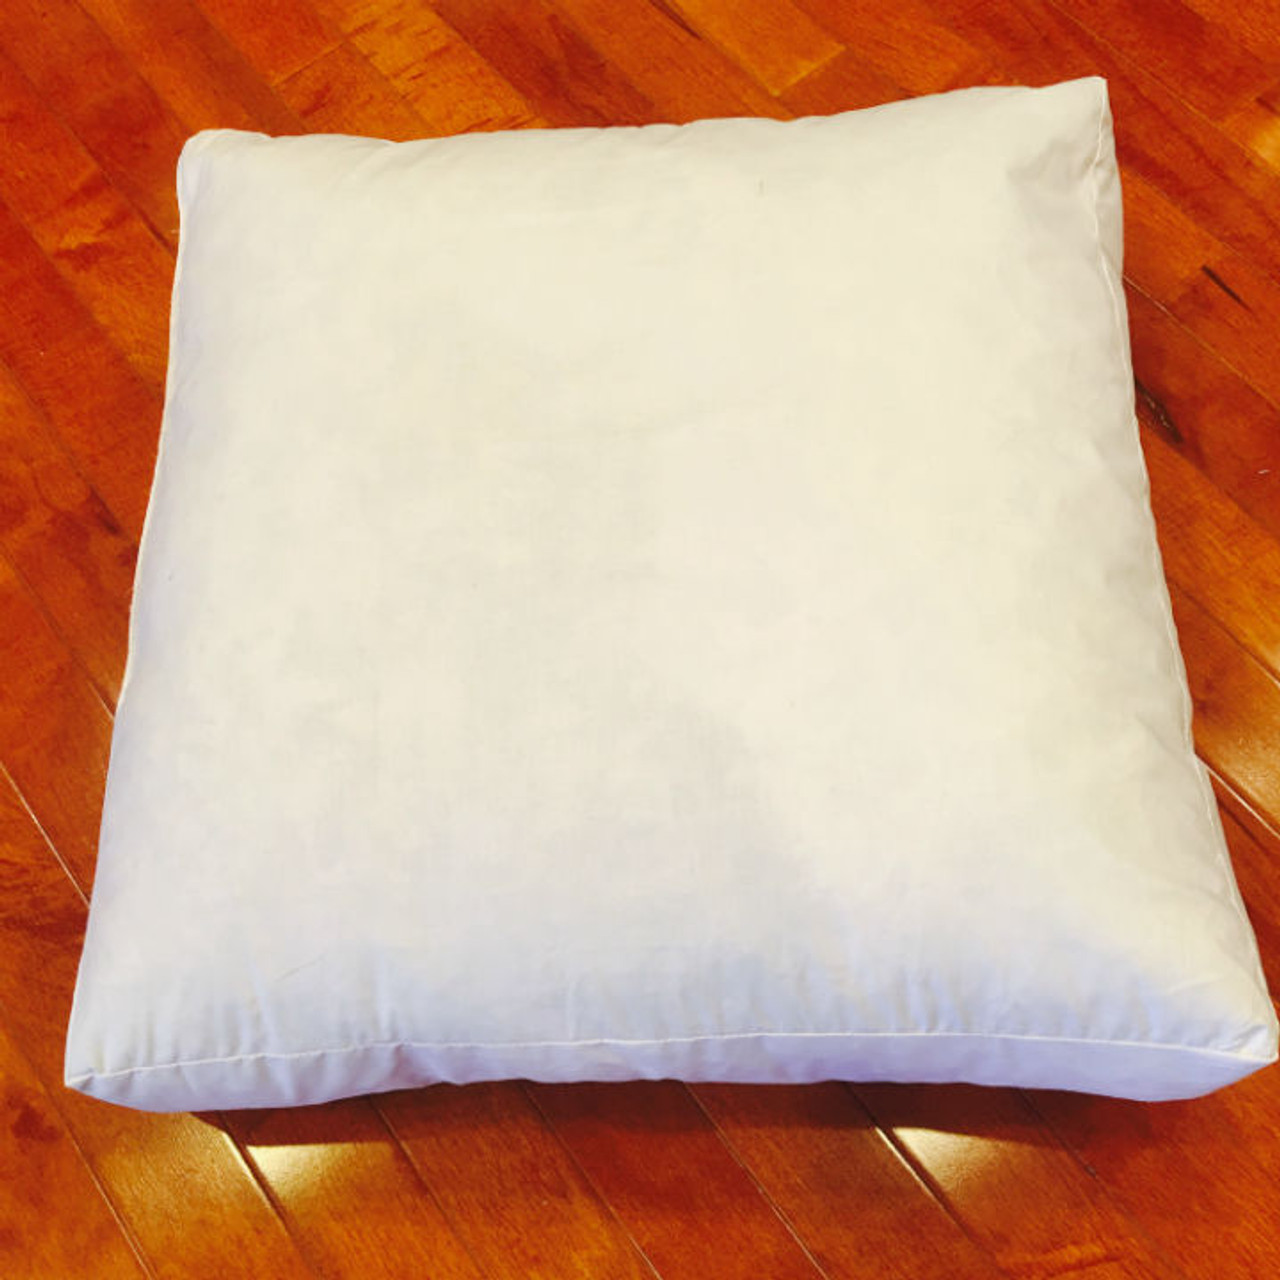 22 x 22 x 3 10 90 down feather box pillow form